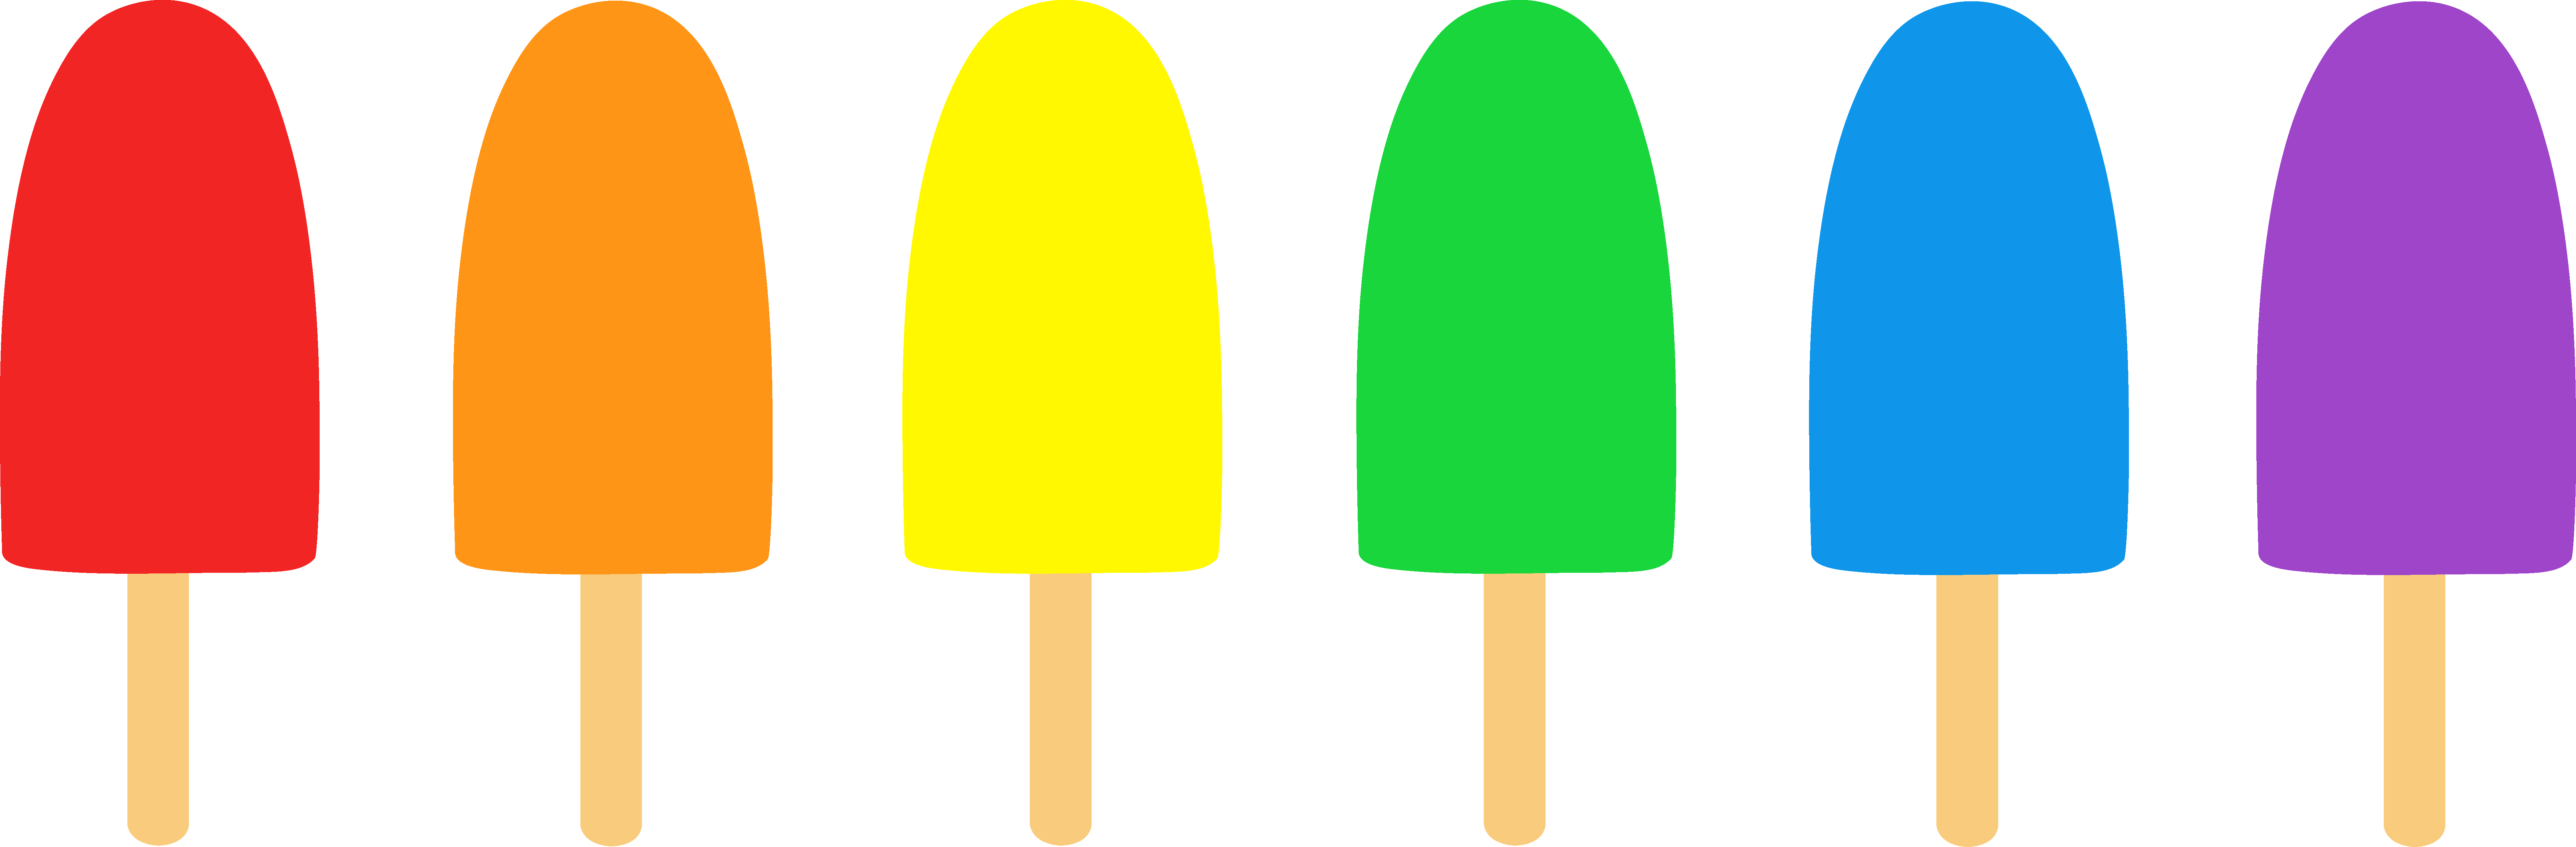 Clip Art Popsicle Clipart popsicle clipart kid images pictures becuo